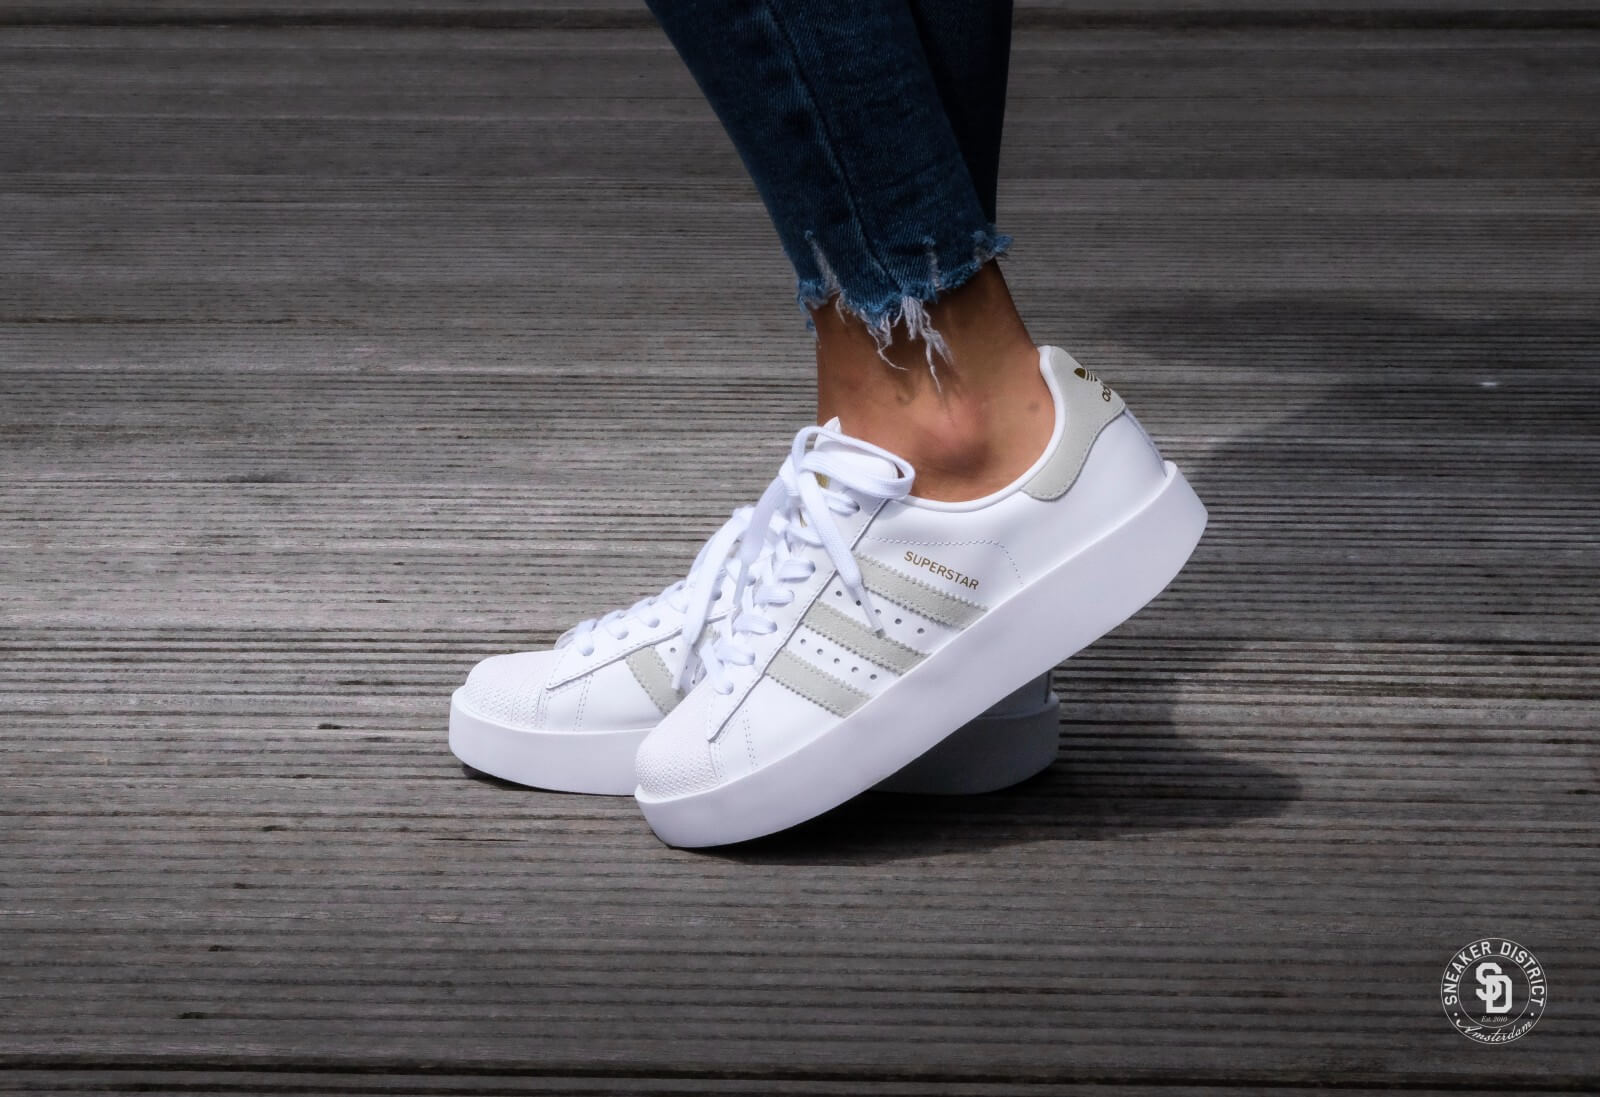 Adidas WMNS Superstar Bold Footwear White/Linen Green/Gold Metallic - BY2948